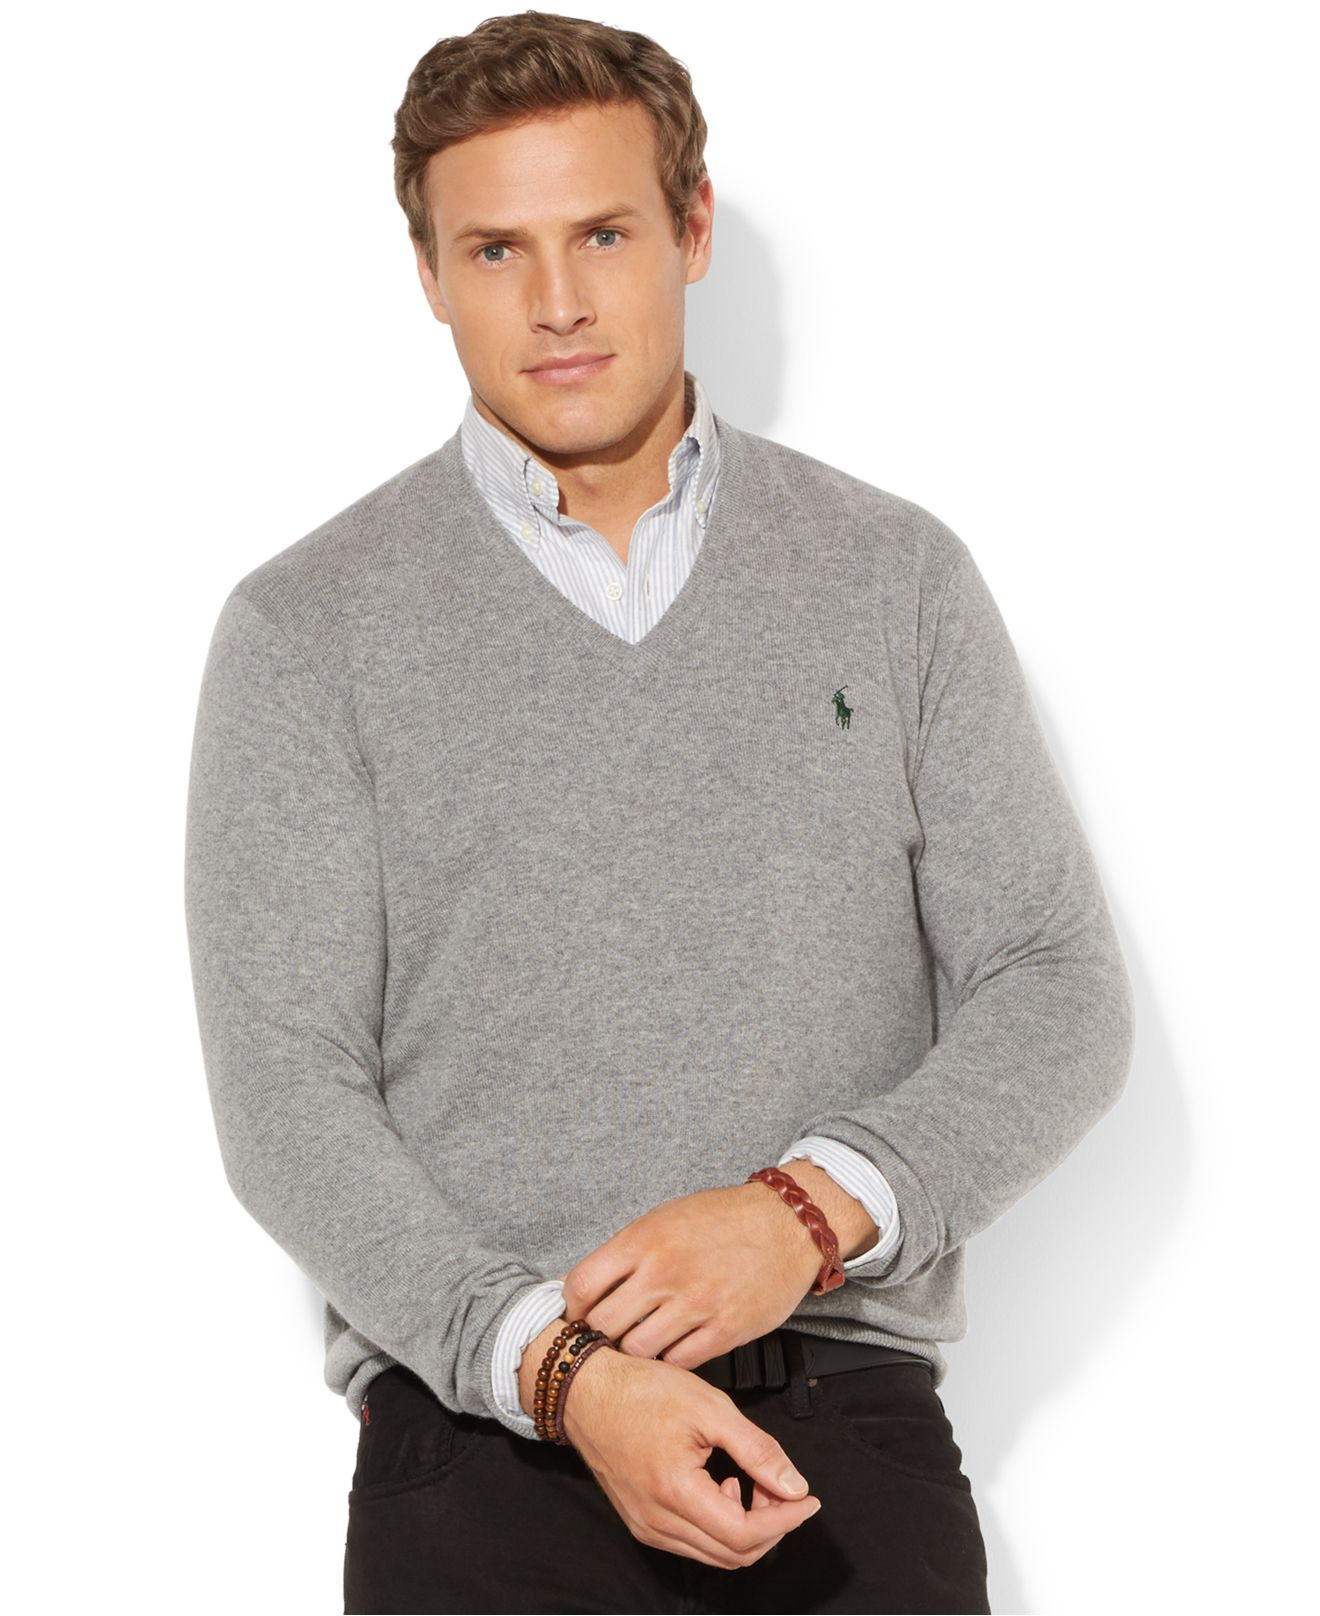 2b1e36187 Polo Ralph Lauren Big And Tall Merino Wool V-Neck Sweater in Gray ...